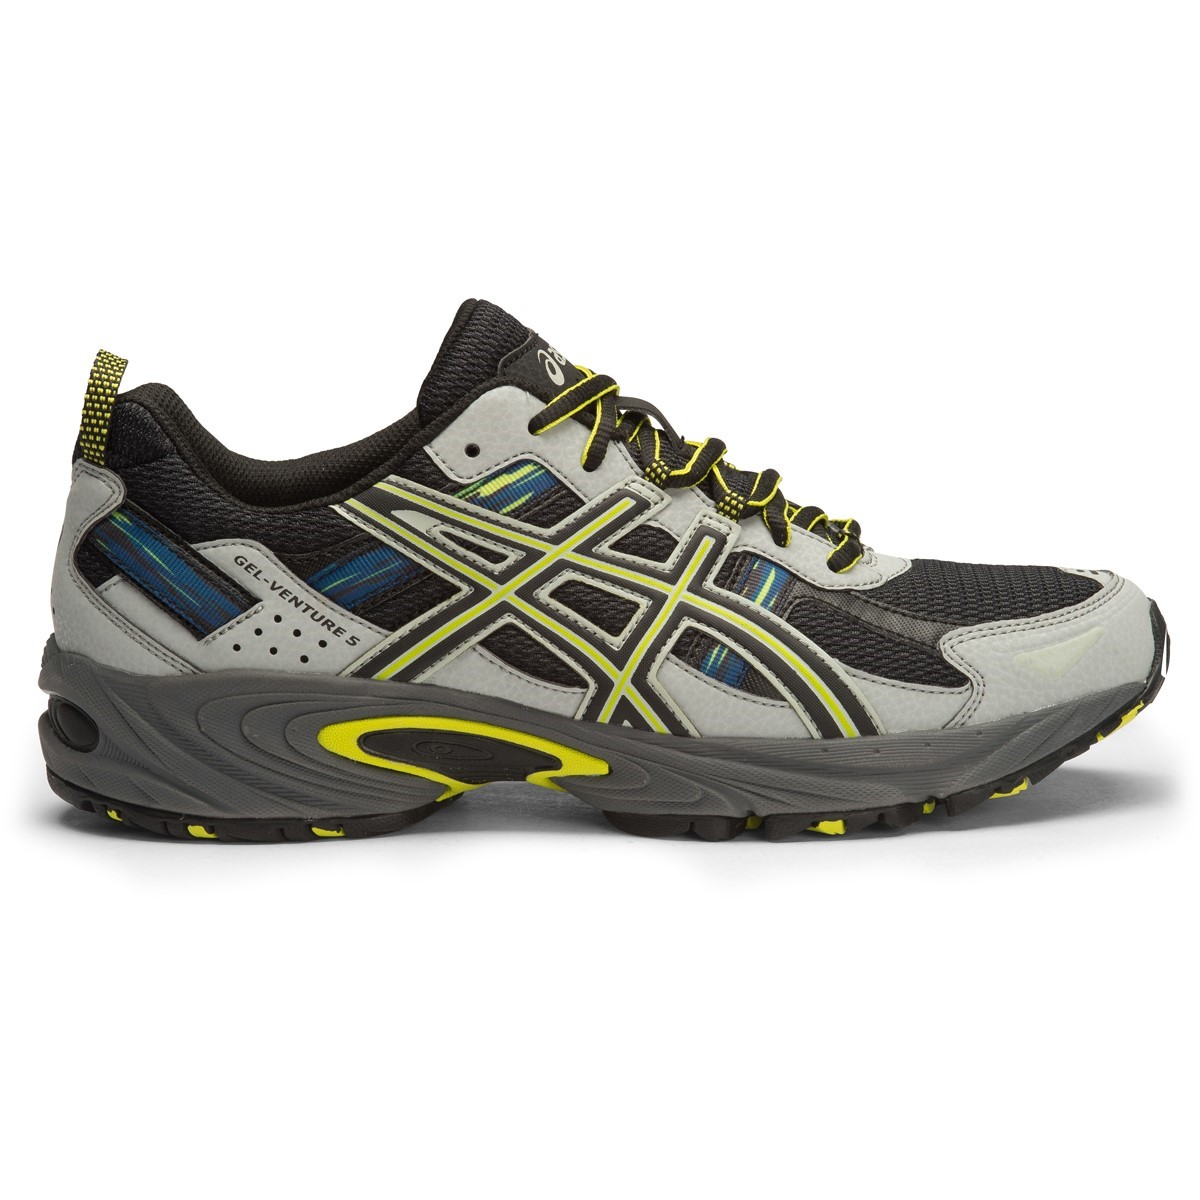 cde6d9b9fcc Asics Gel Venture 5 - Mens Trail Running Shoes - Dark Steel Black Neon